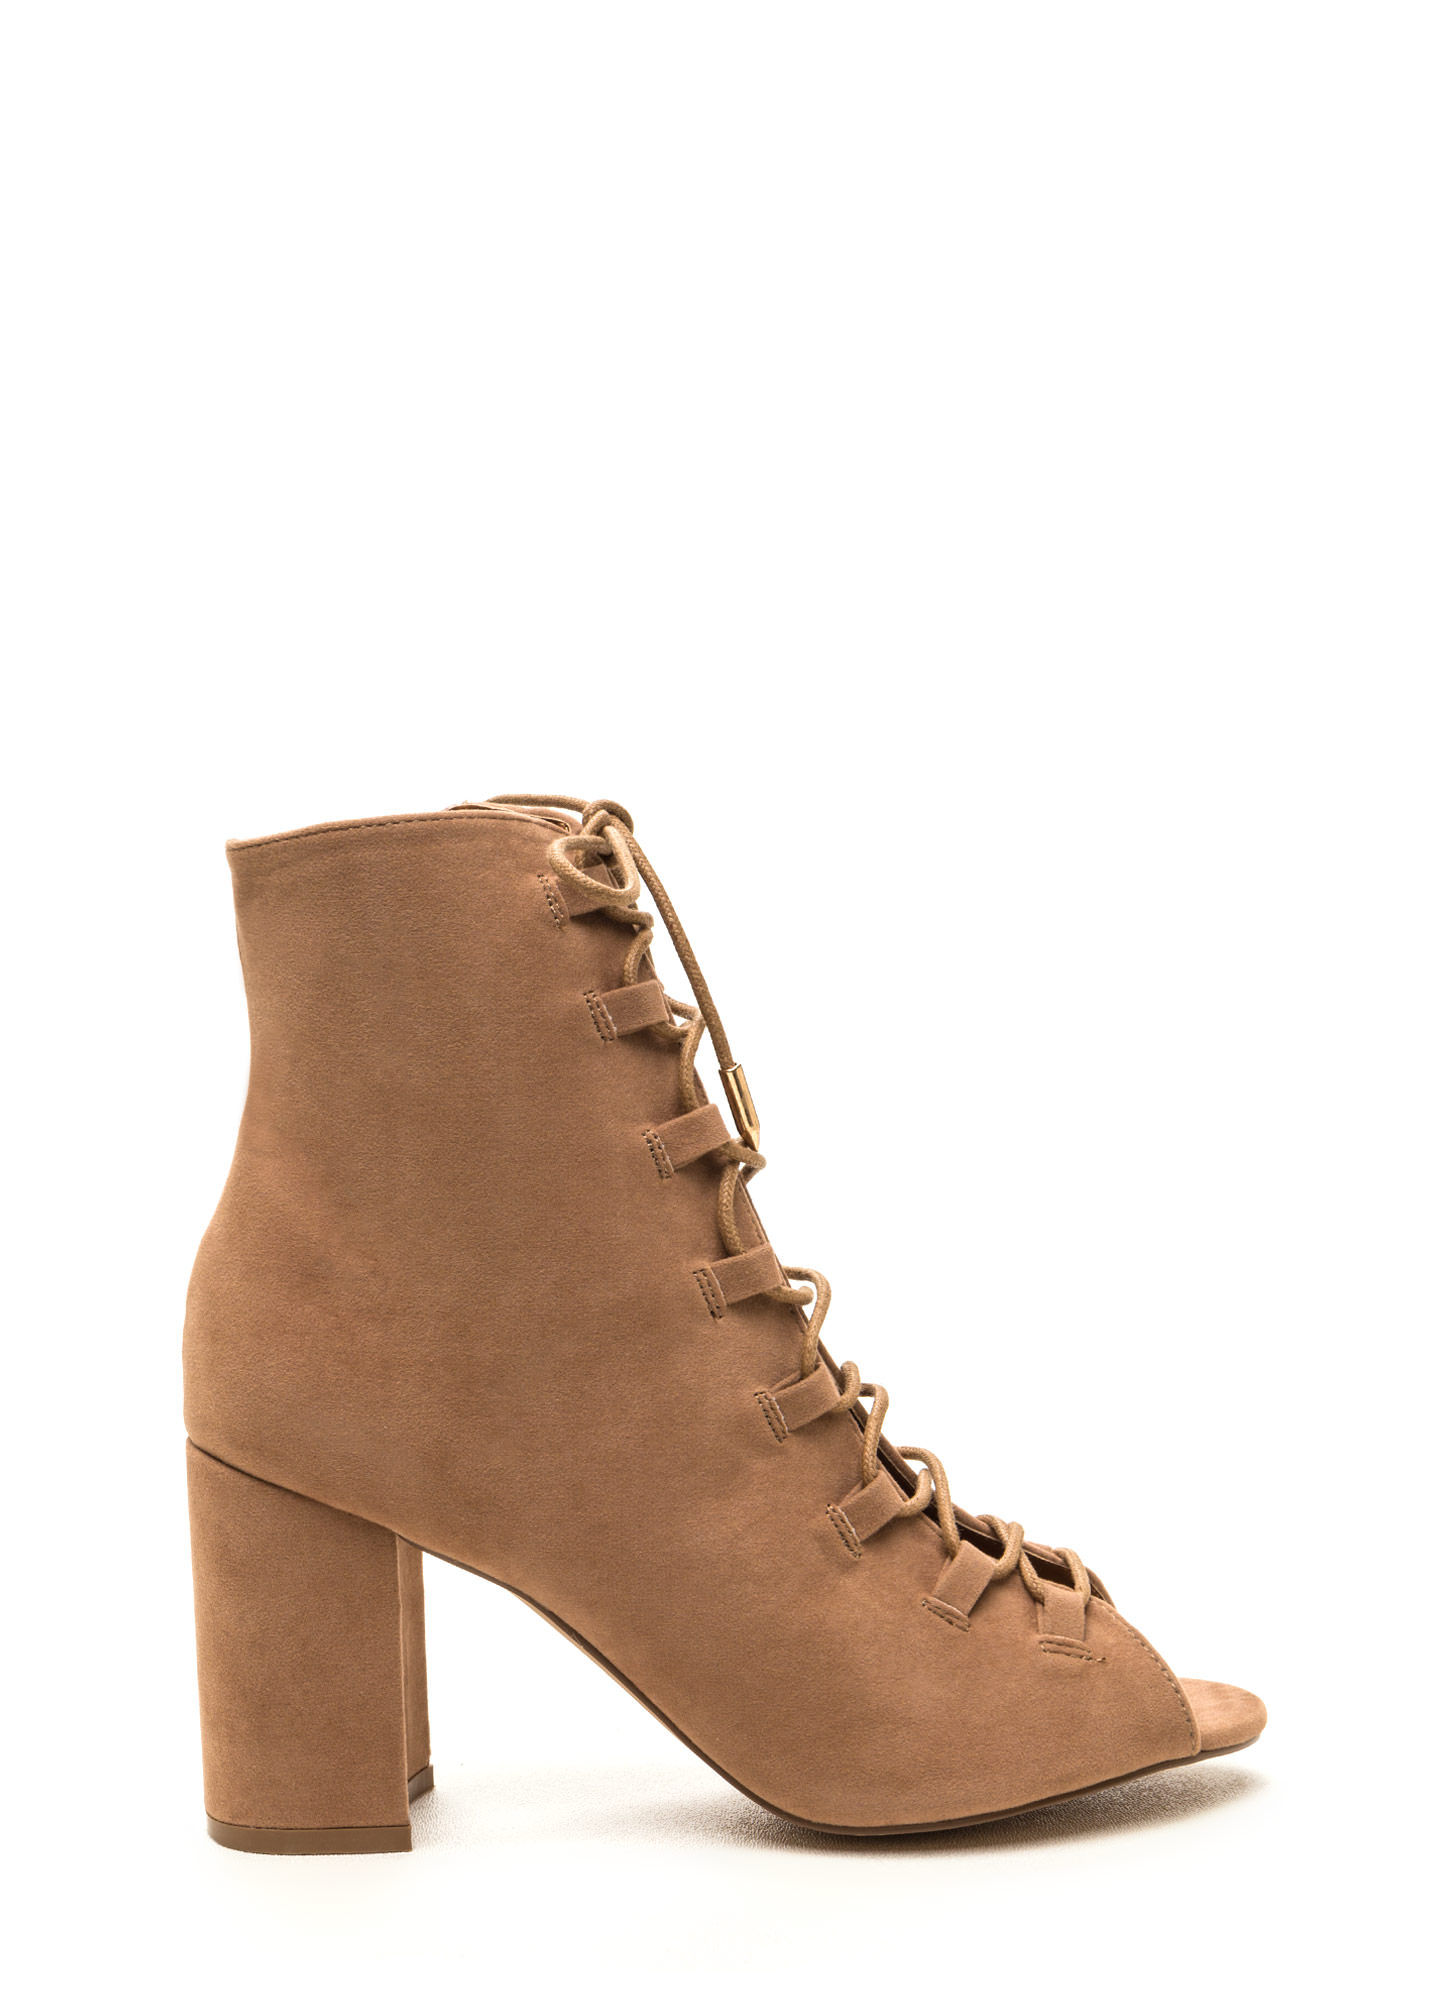 Daily Strut Lace-Up Chunky Booties TAUPE